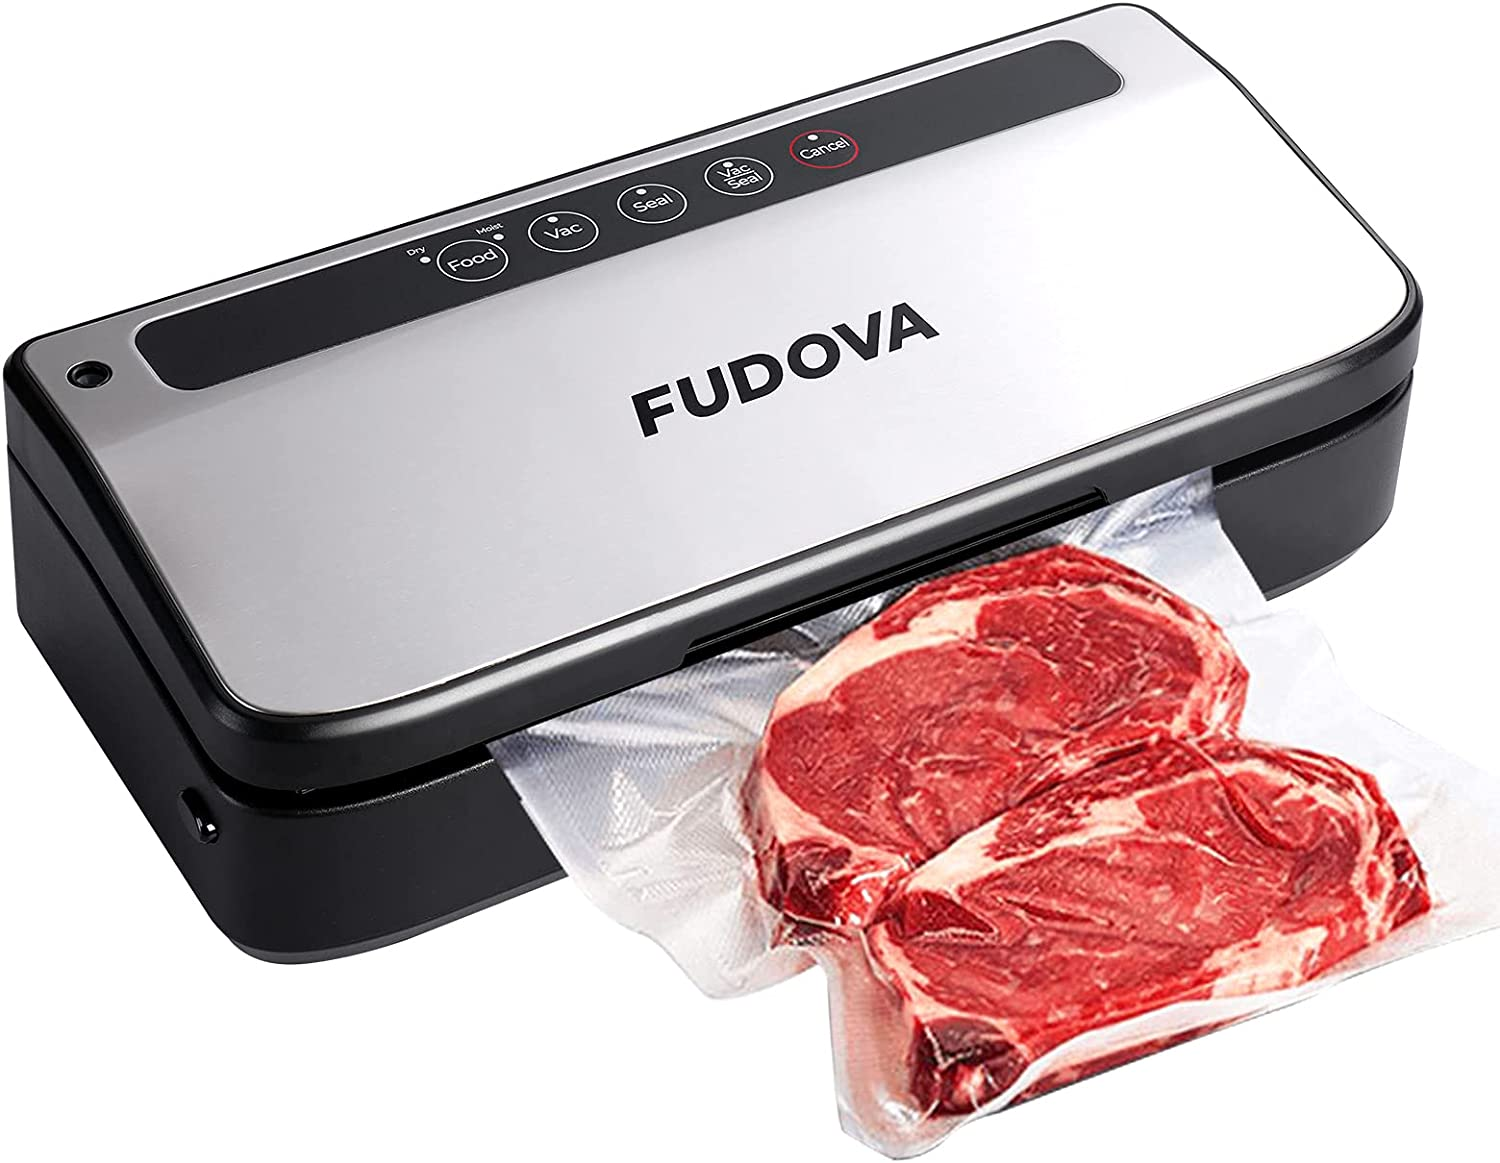 FUDOVA Vacuum Sealer Machine, Food Saver for Keep Fresh, 80Kpa Vacuum Strong Suction Preservation System, Soft Silicone Sealing ring ,Dry & Moist Food Modes (with 10 Sealer Bags), Silver